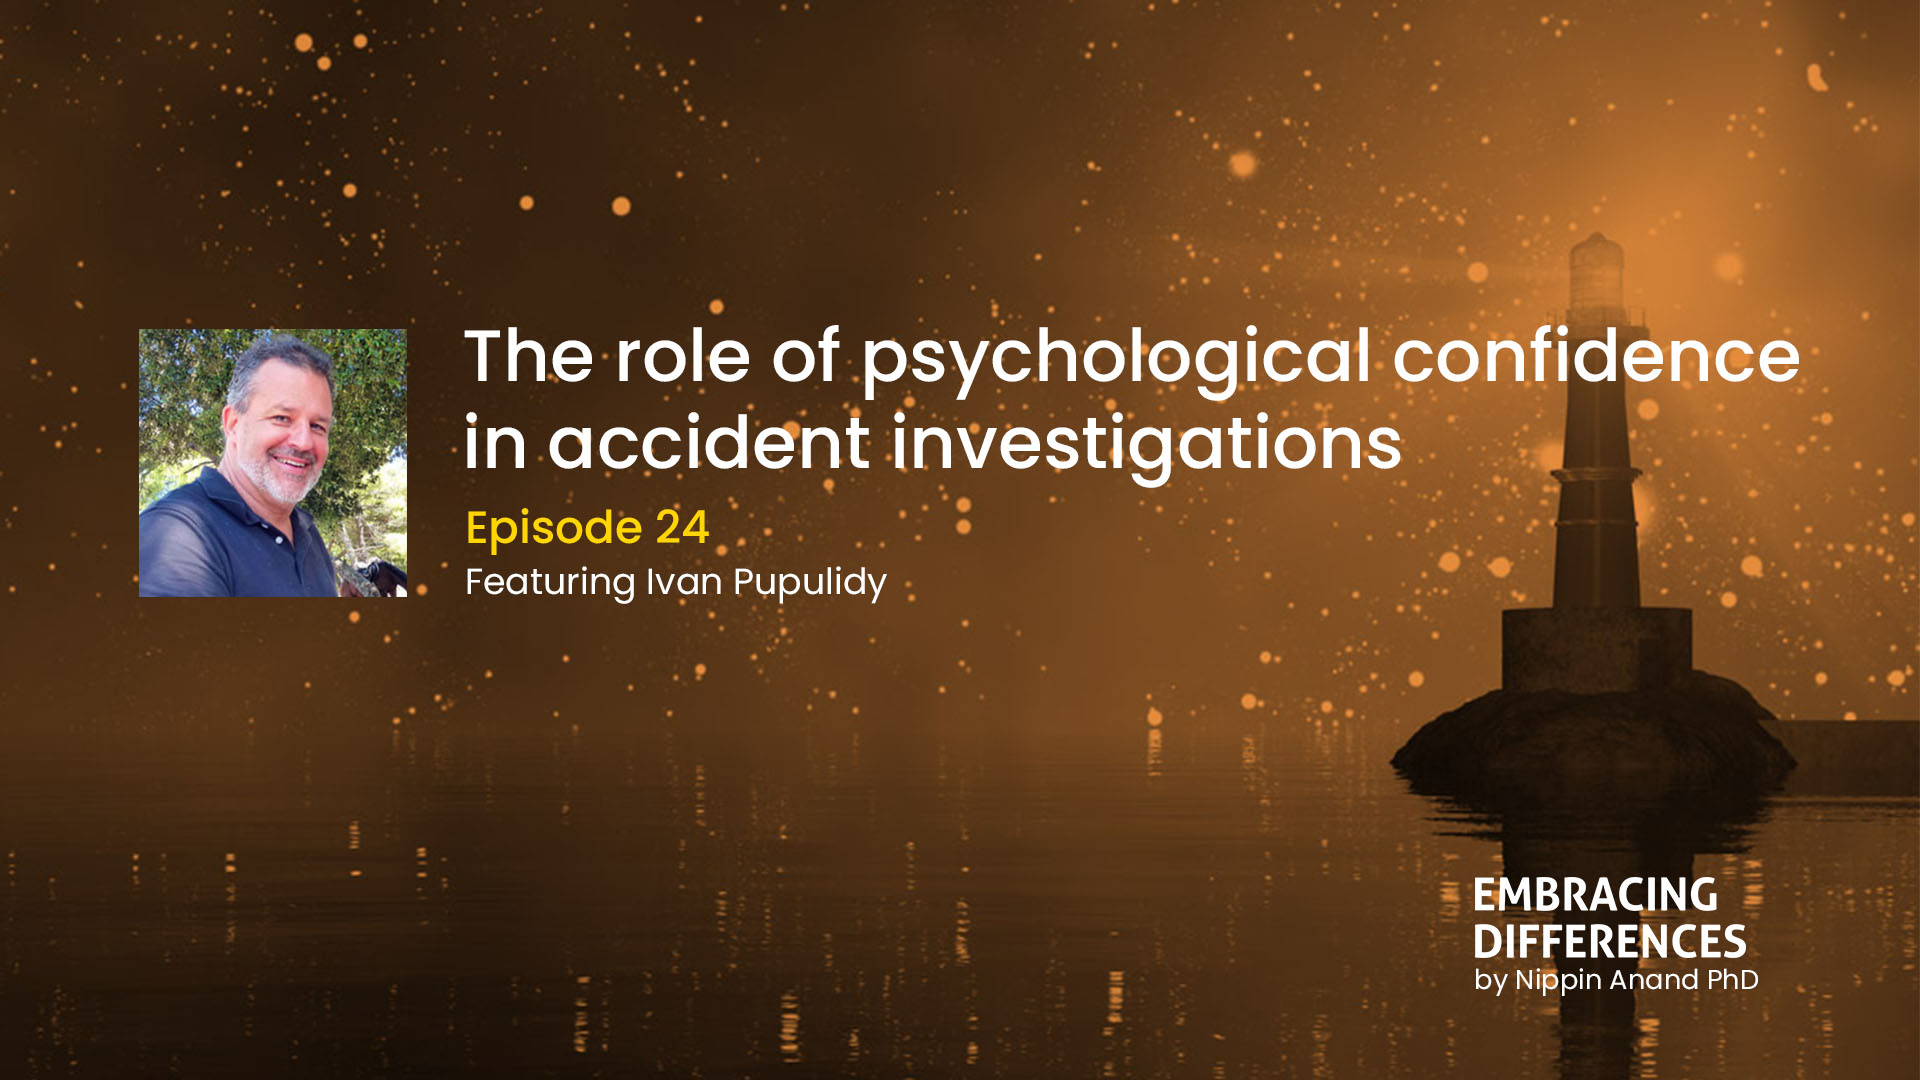 The role of psychological confidence in accident investigations: A discussion with Ivan Pupulidy